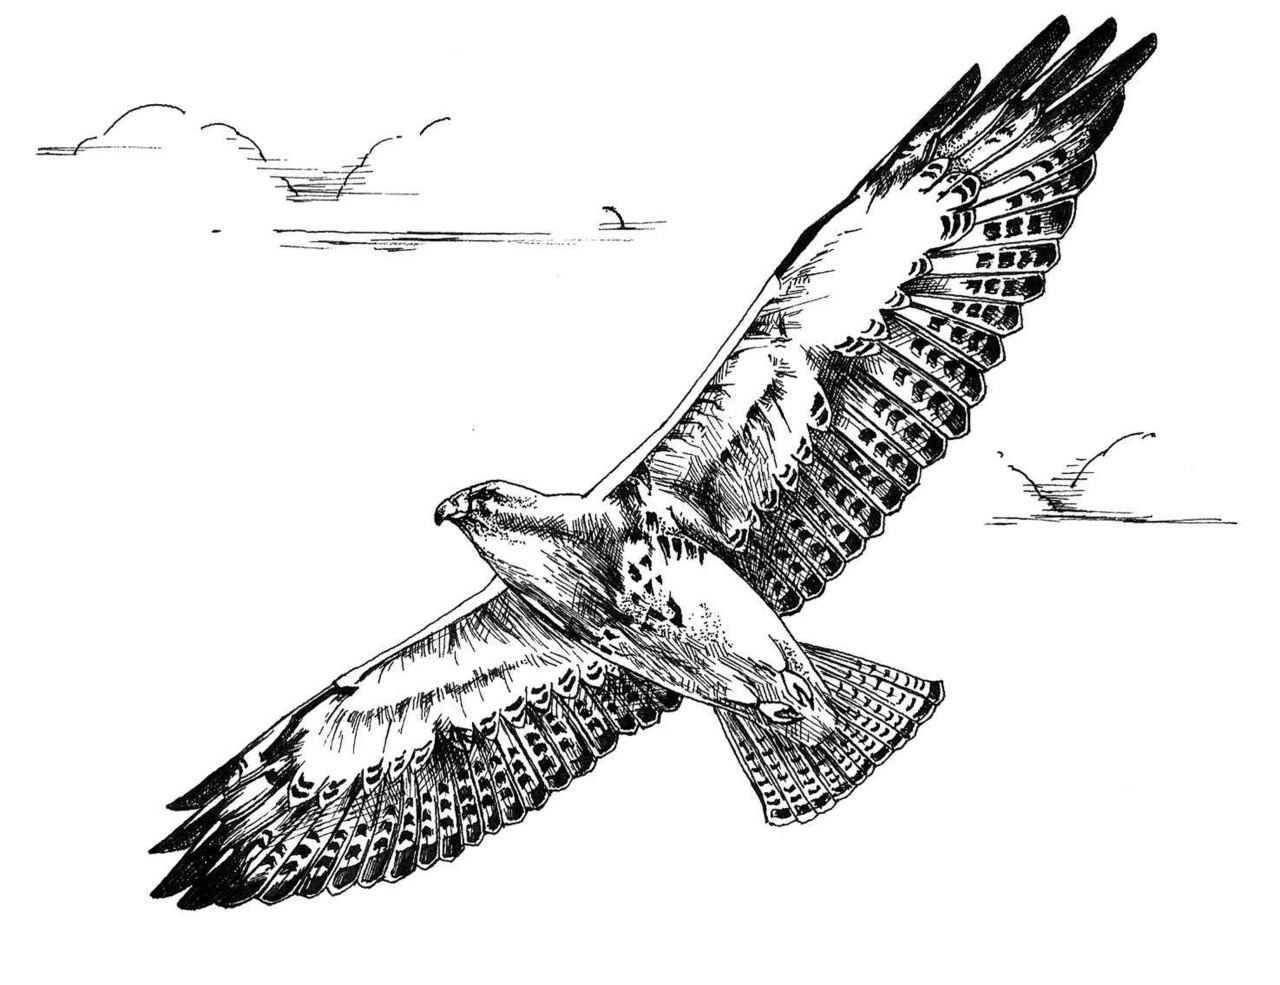 Black And White Line Art : File black and white line art drawing of swainson hawk